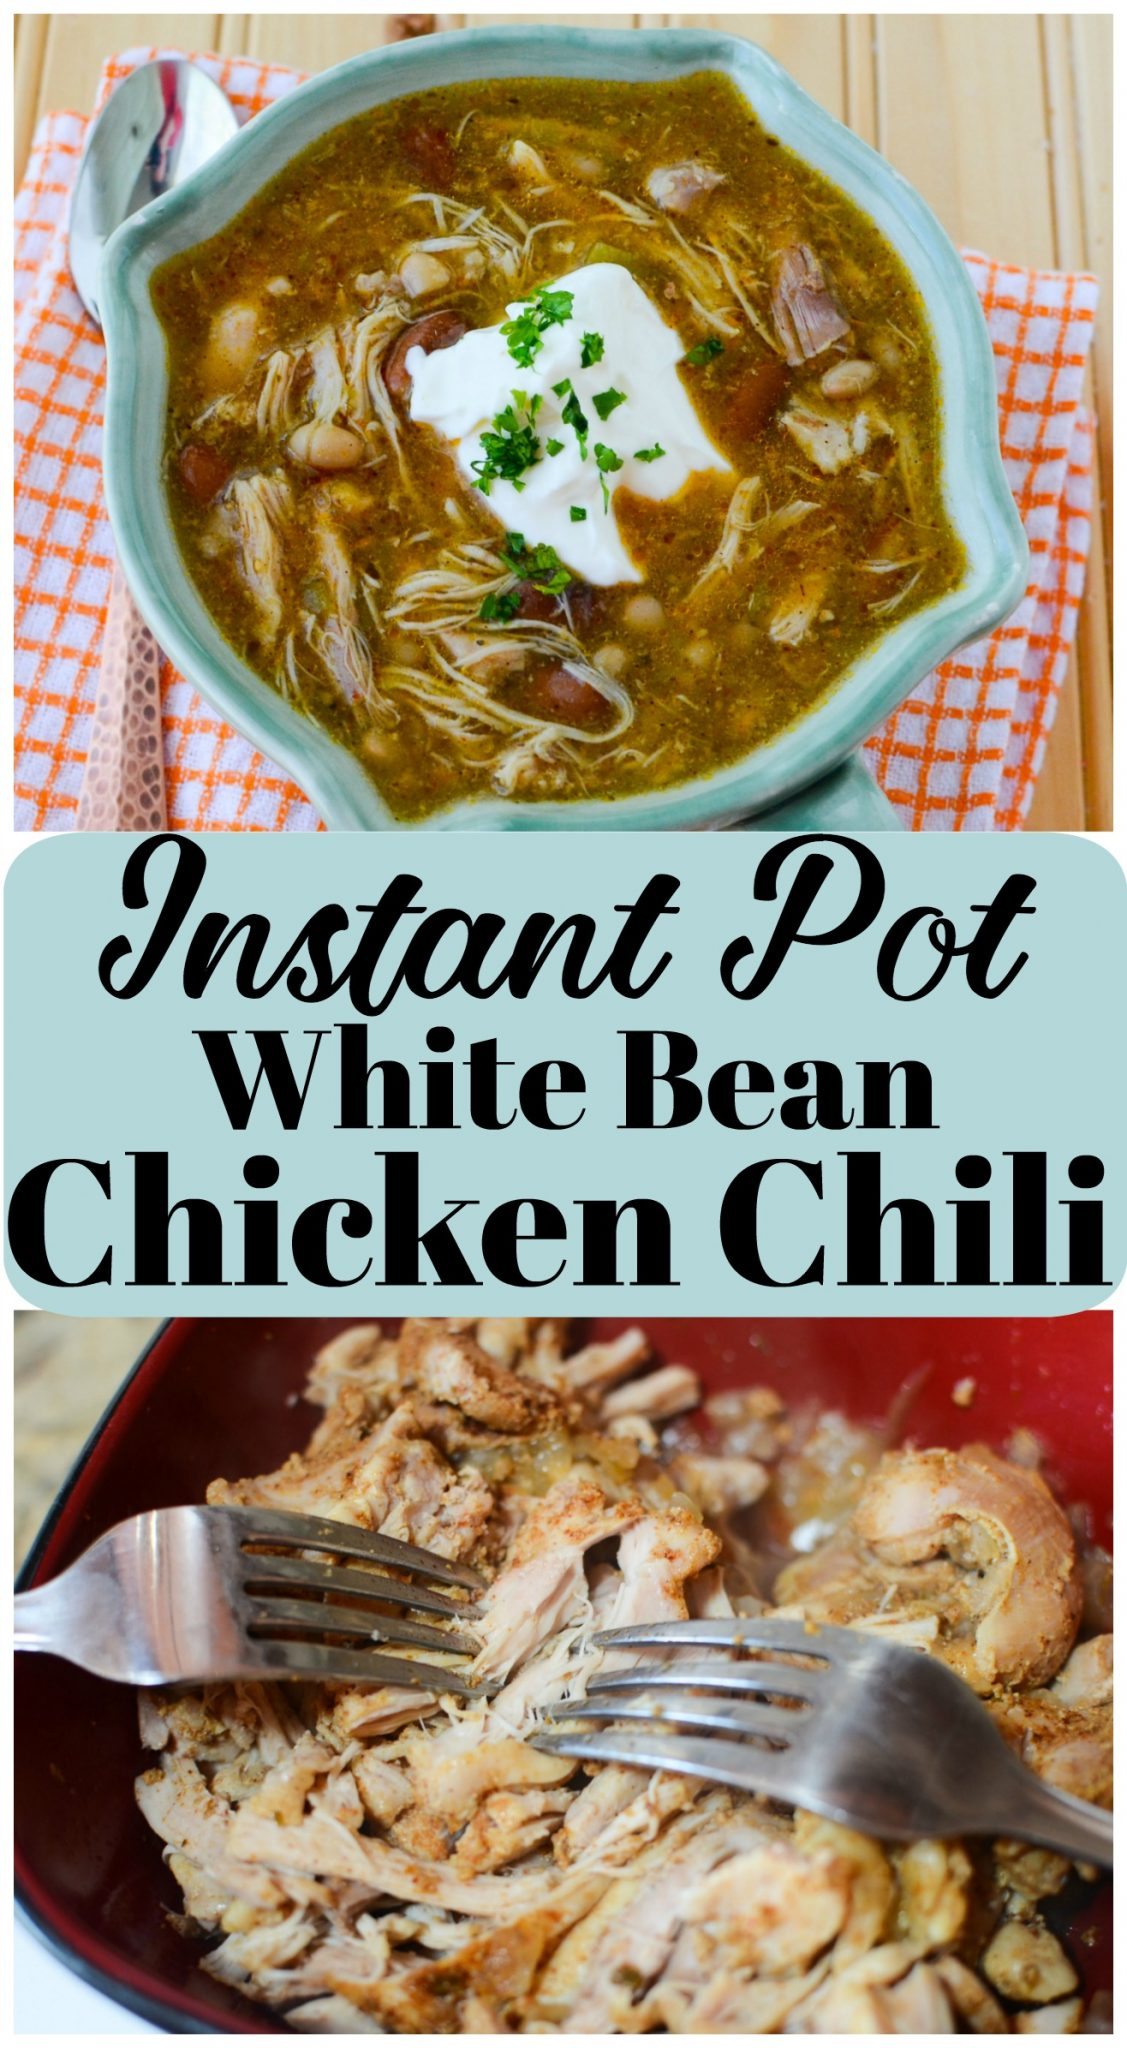 Instant Pot White Bean Chicken Chili Recipe